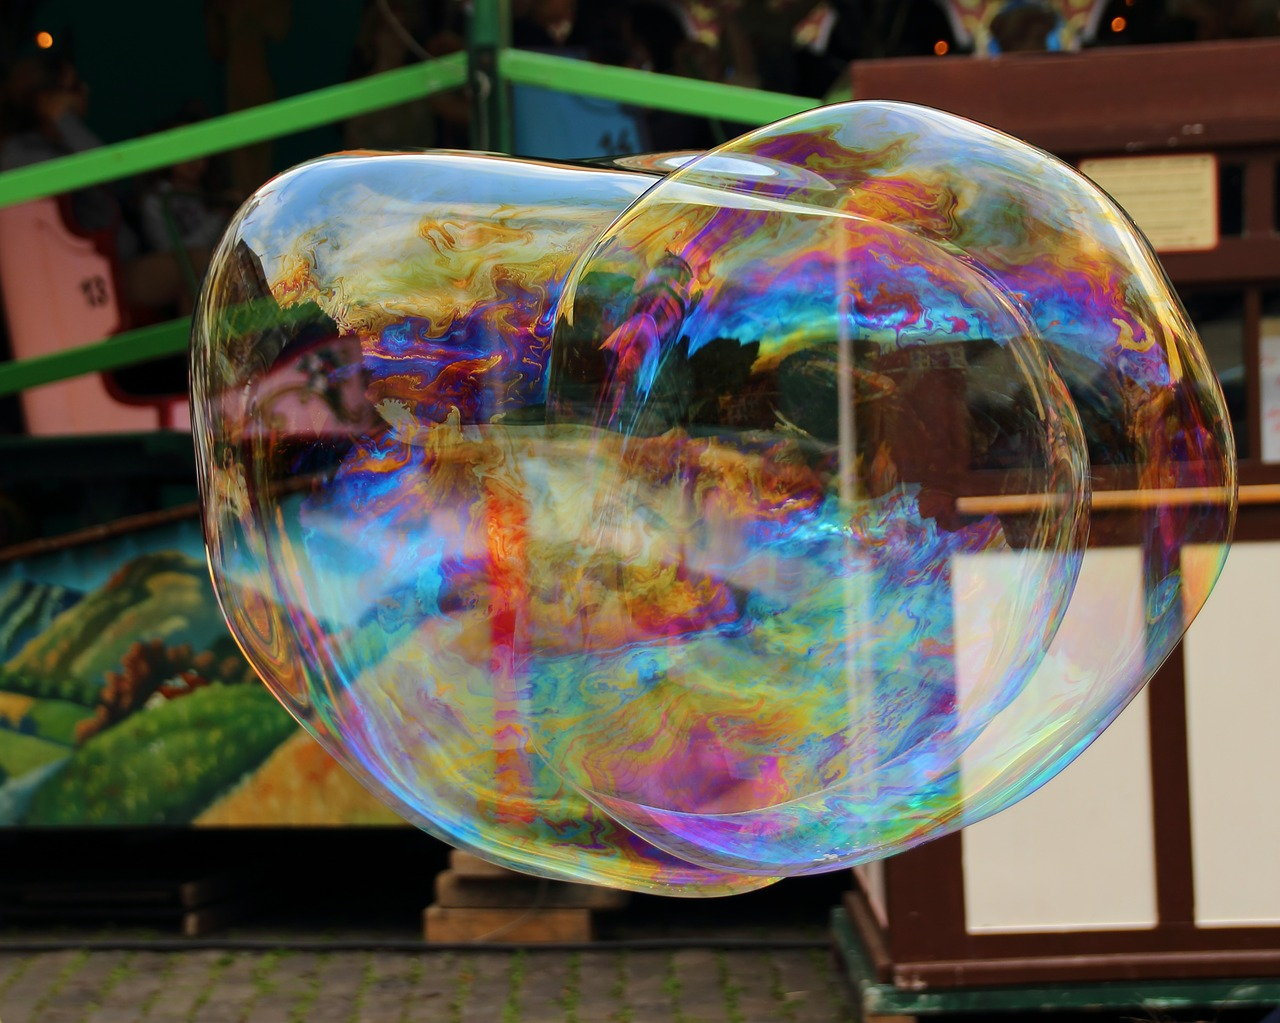 soap-bubble-374934_1280